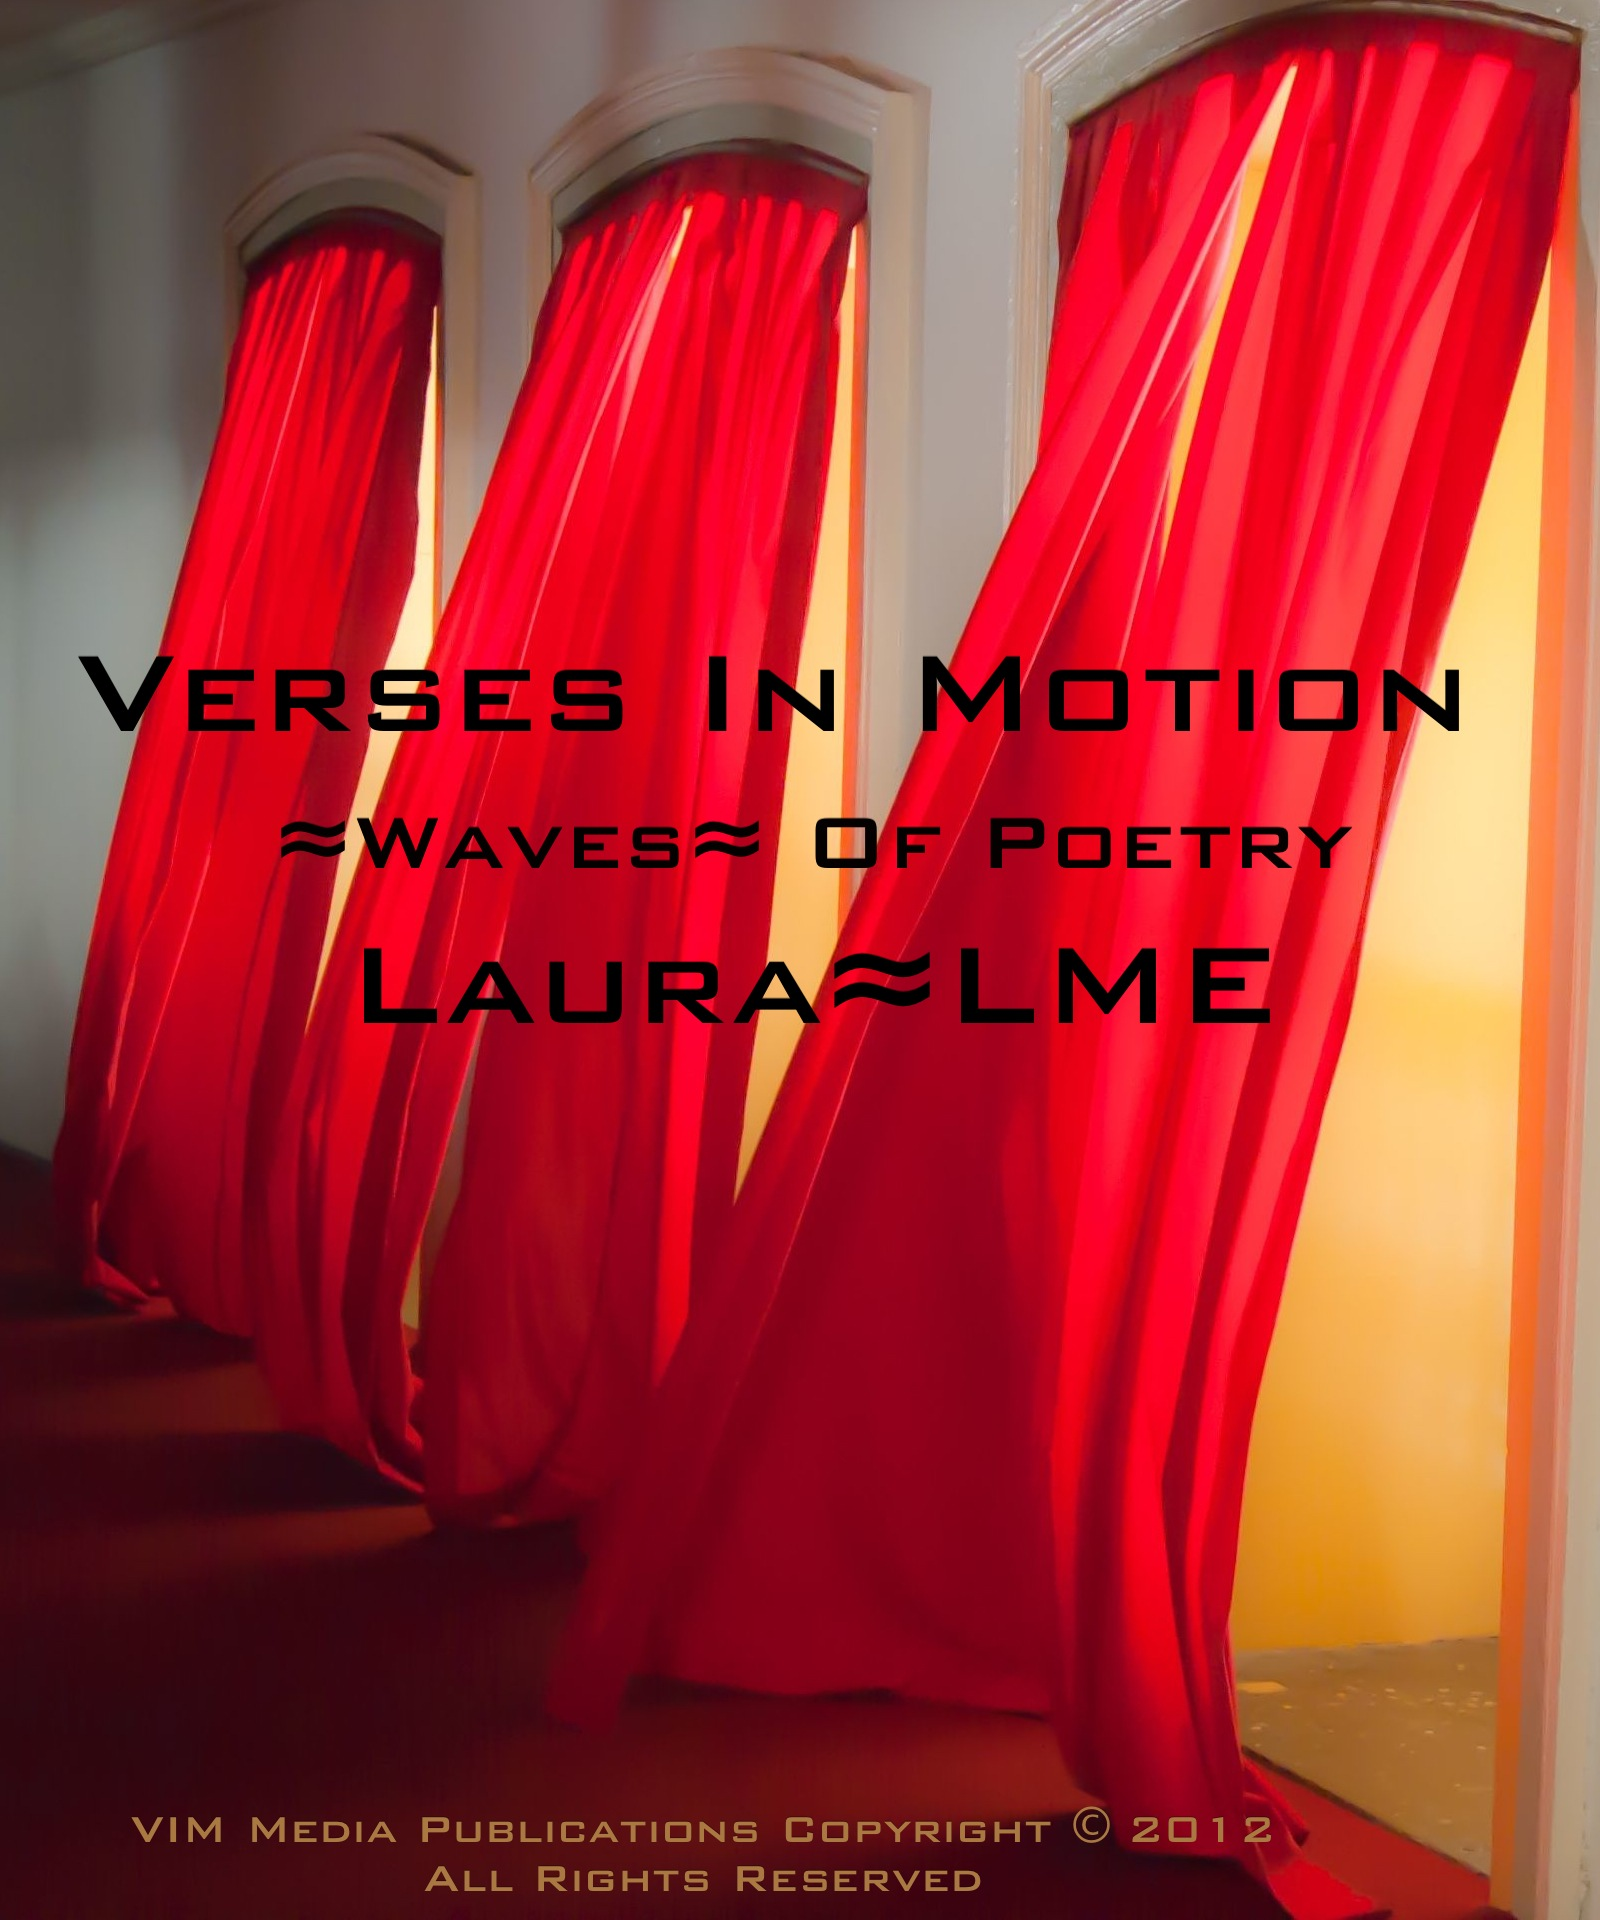 Warriors The New Prophecy Ebook: Laura≈LME Verses In Motion